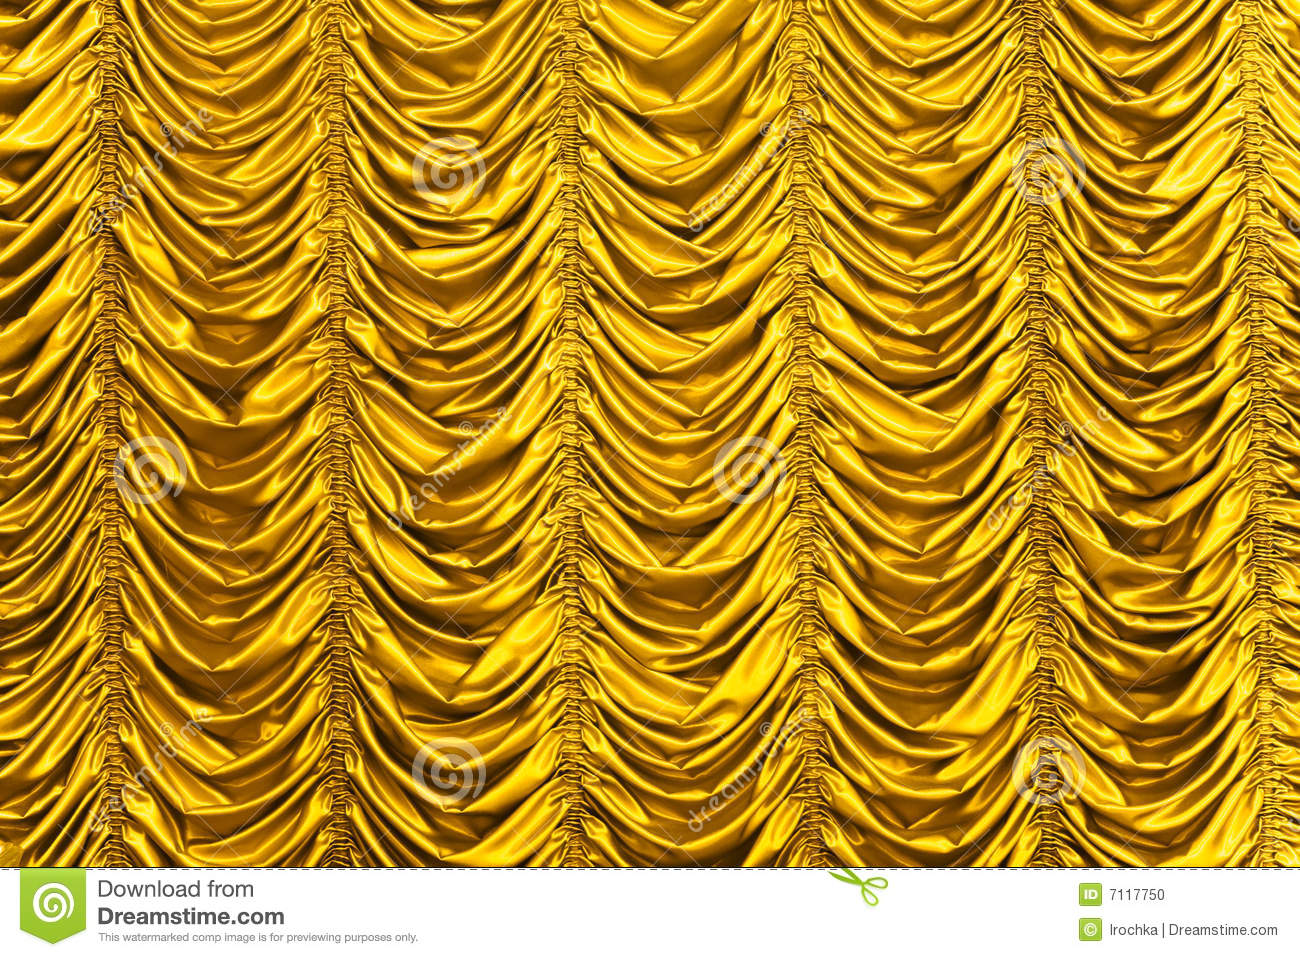 Curtains texture gold - Royalty Free Stock Photo Download Gold Curtain Texture